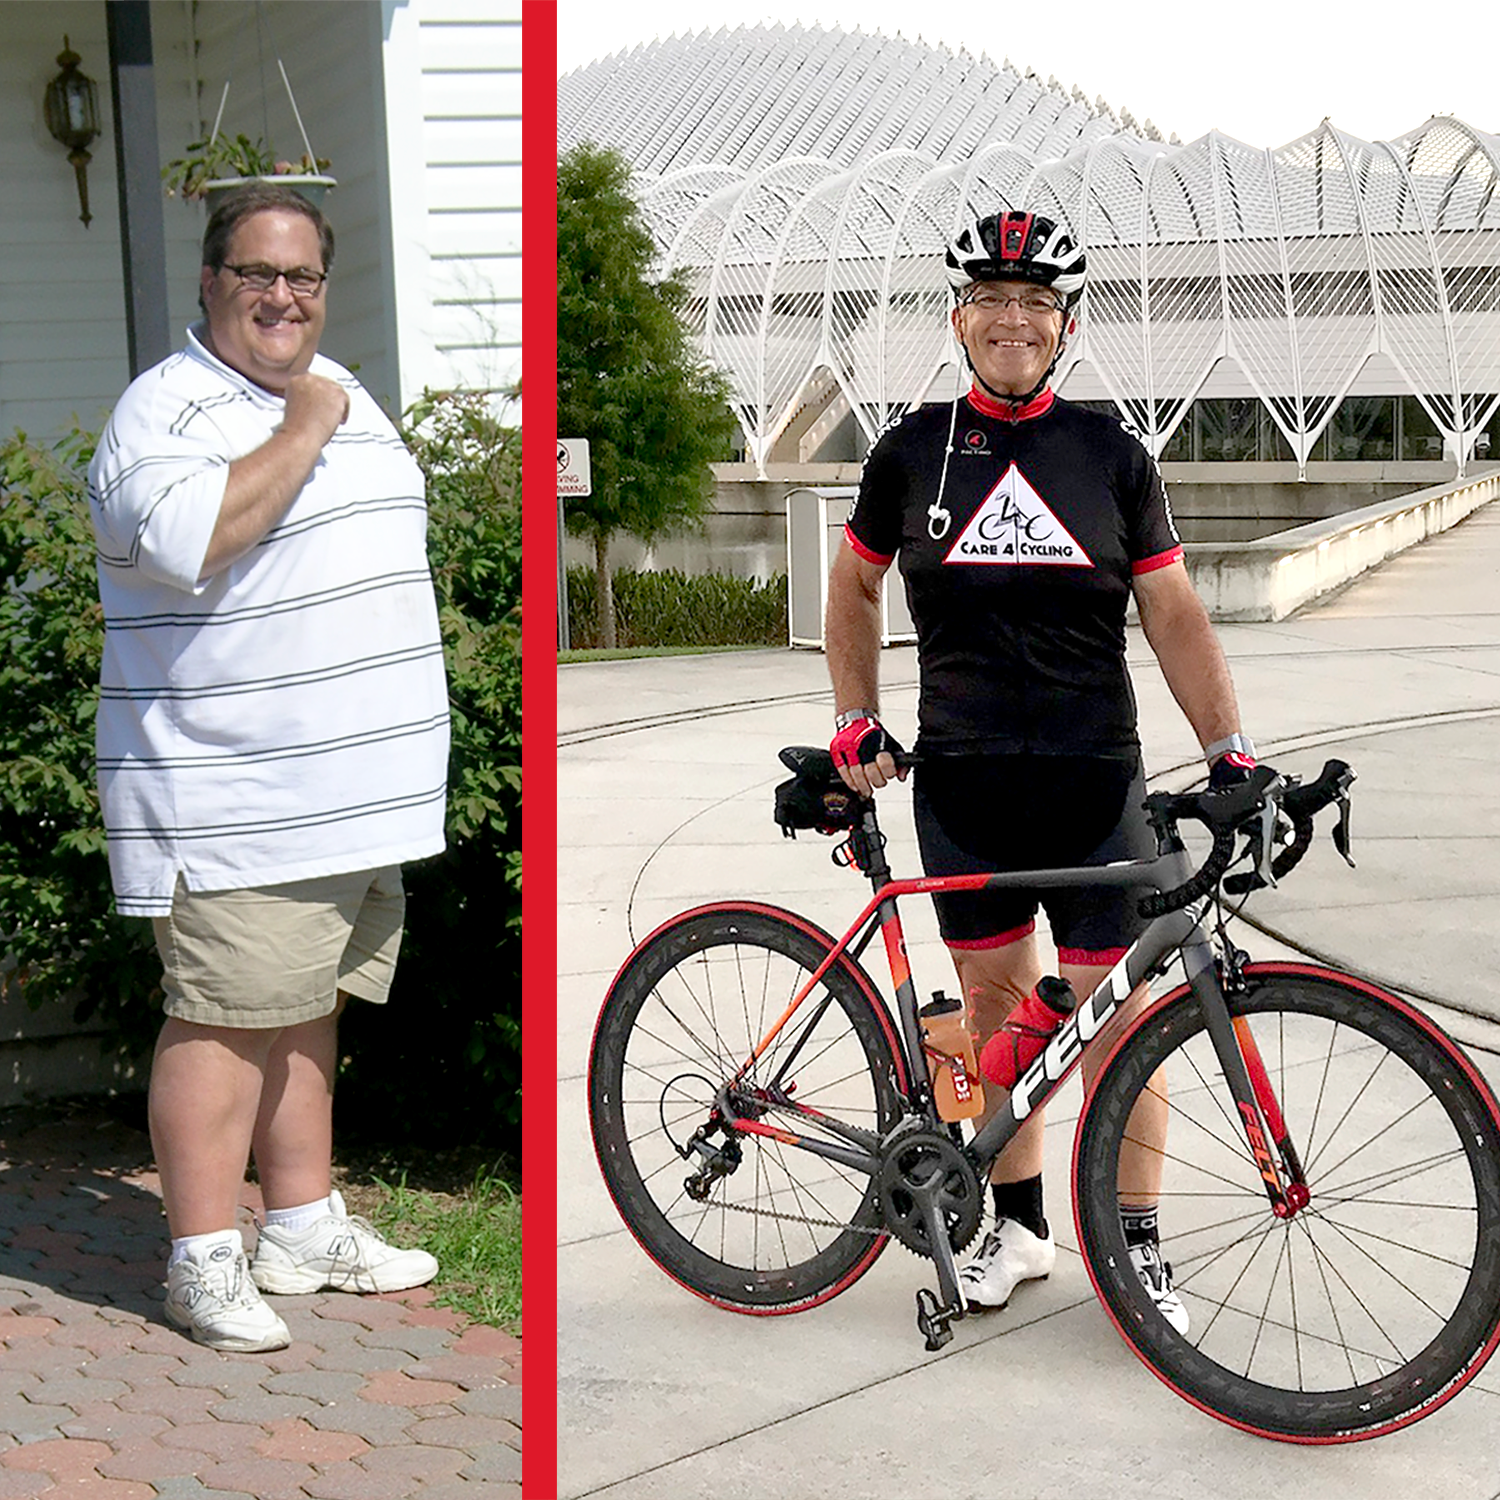 Ideal Weight Ideal Weight For Cycling